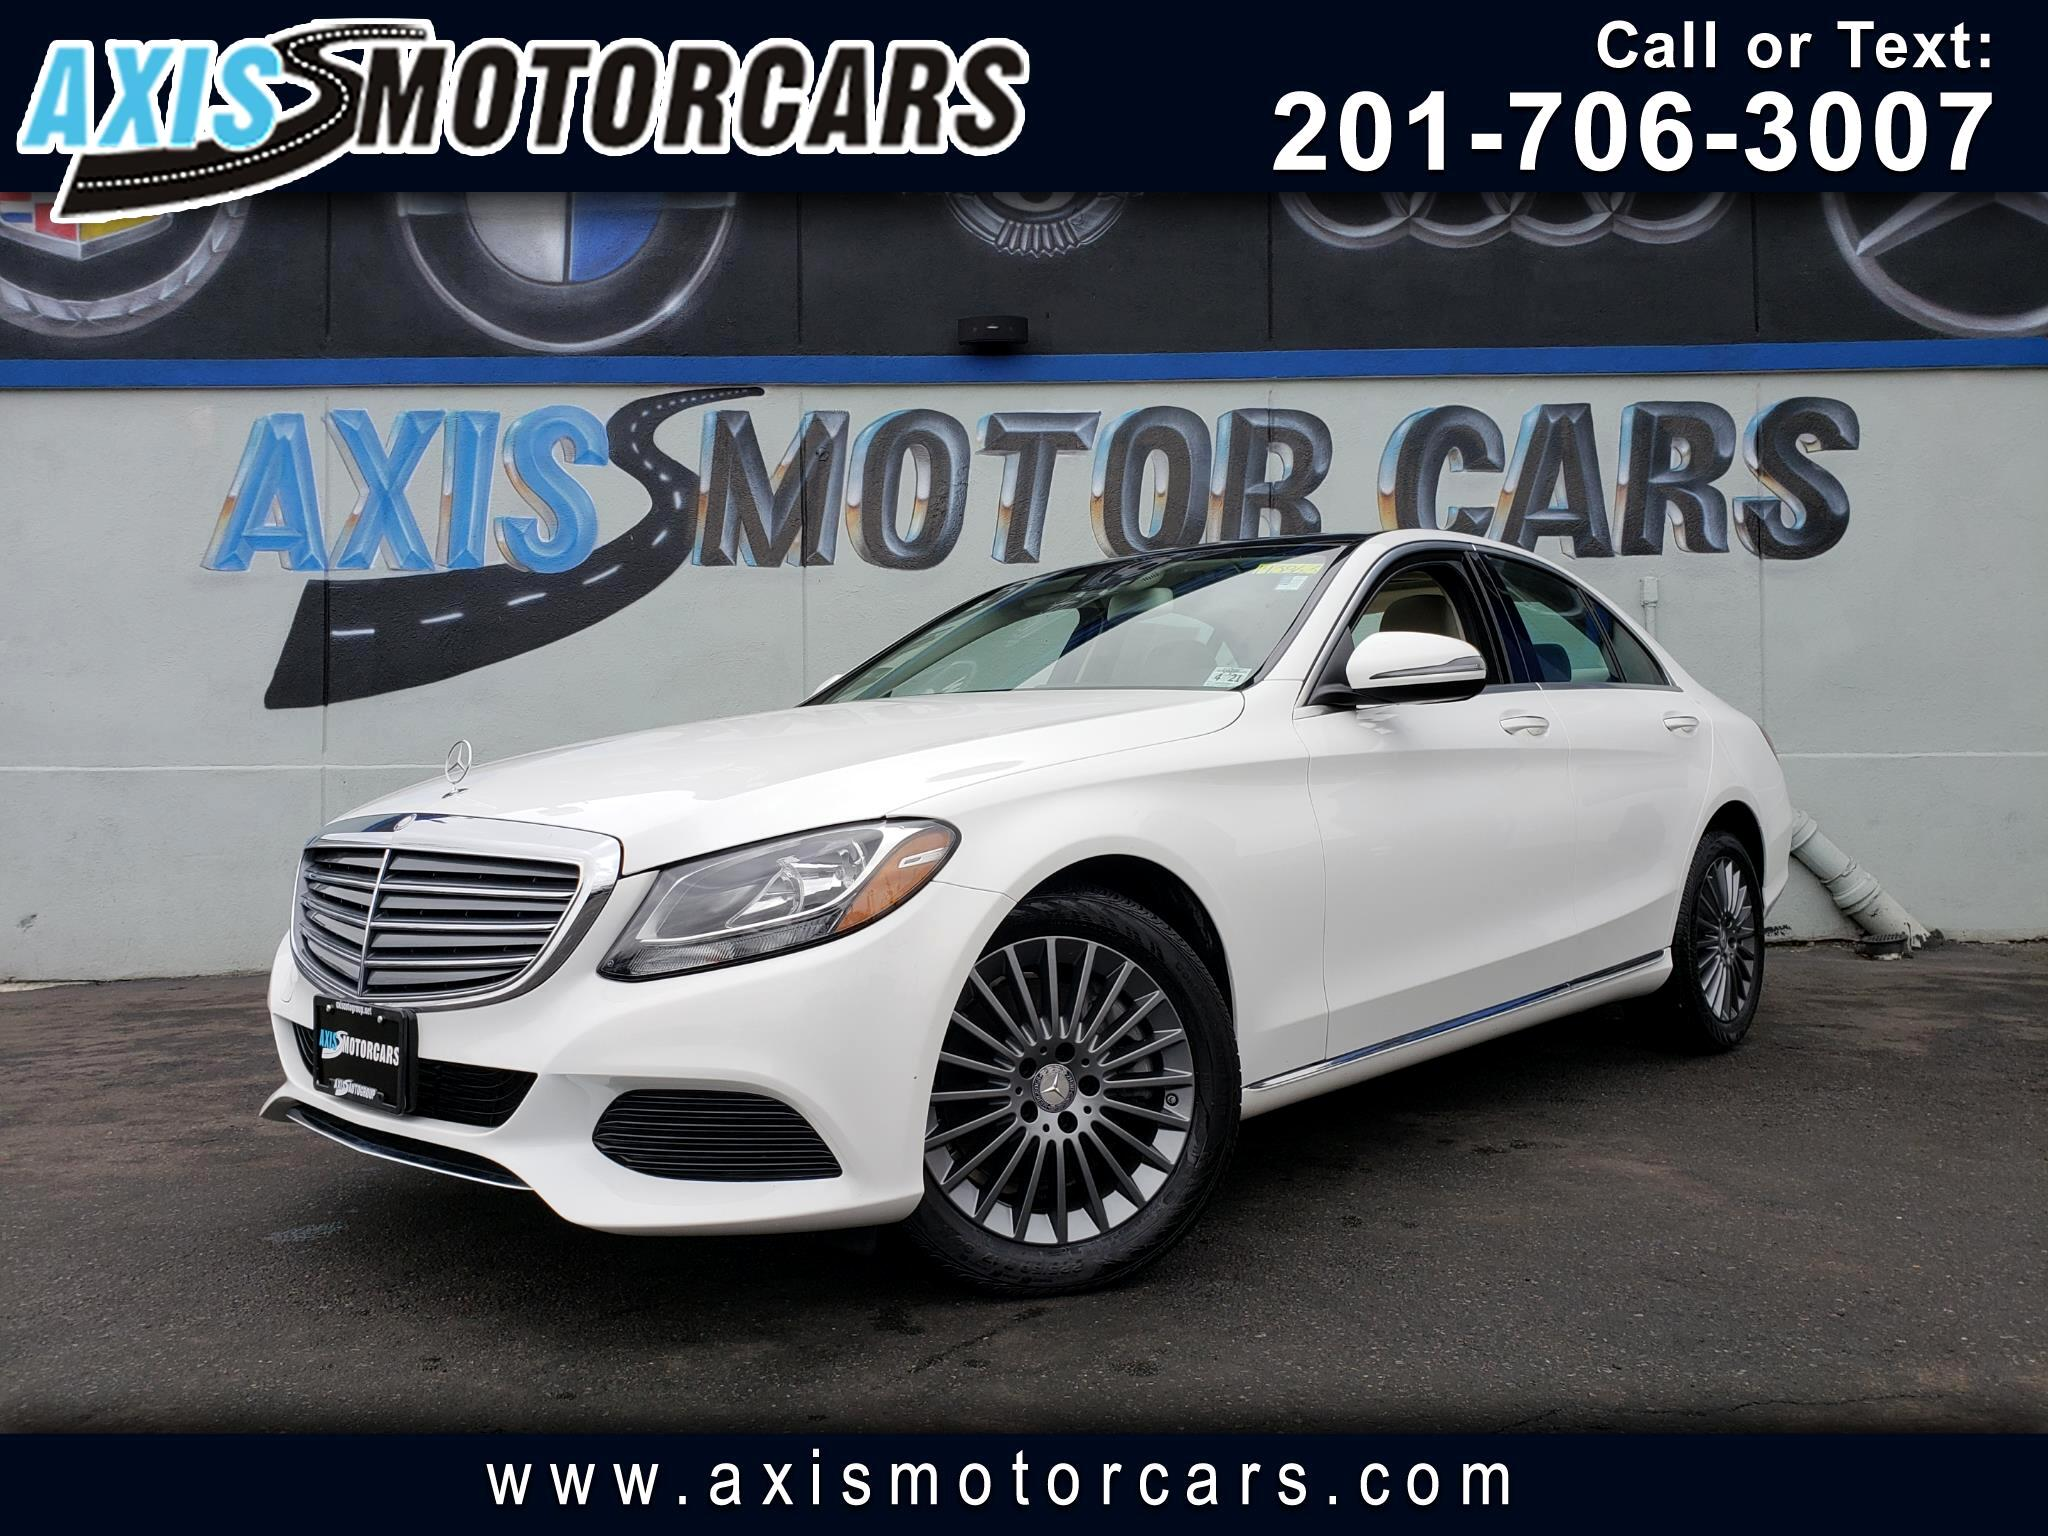 2016 Mercedes-Benz C300 4MATIC w/Navigation Bakup Camera Panoramic Roof